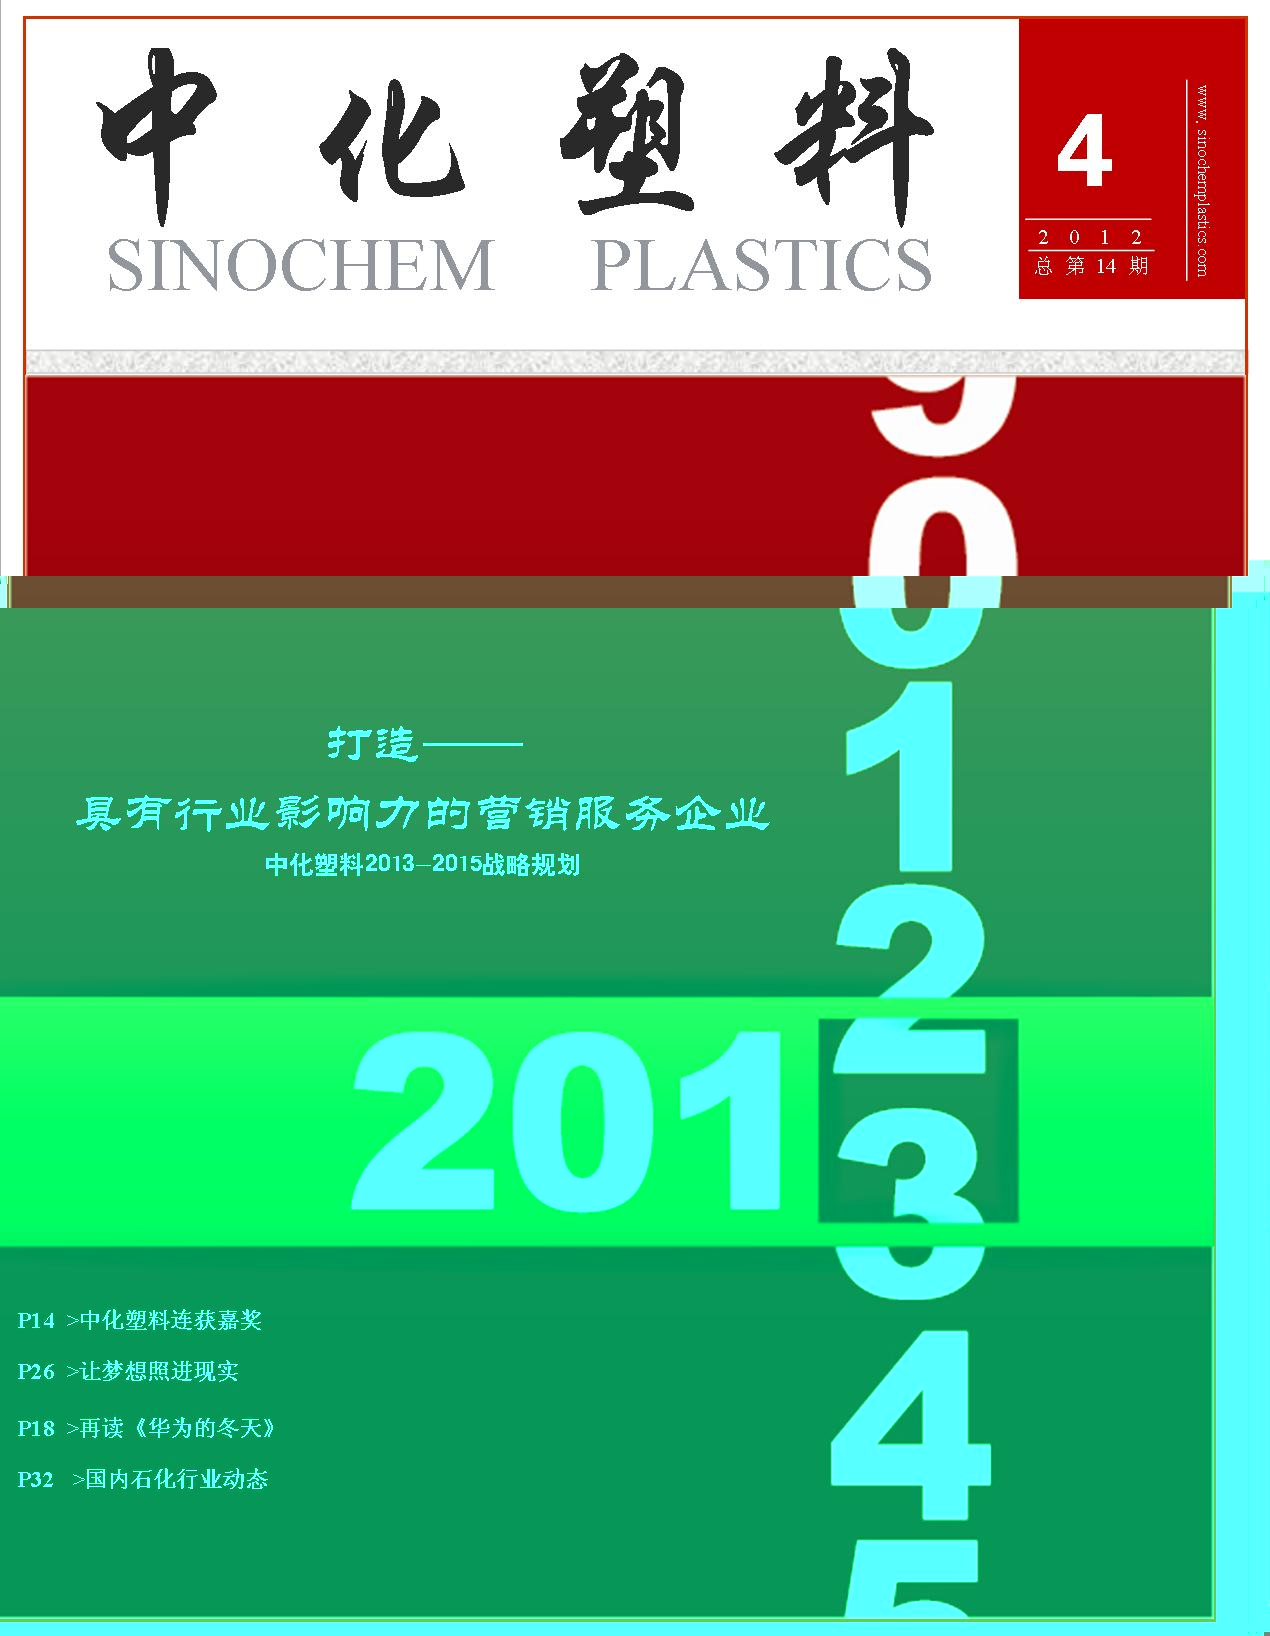 4st issue - 2012